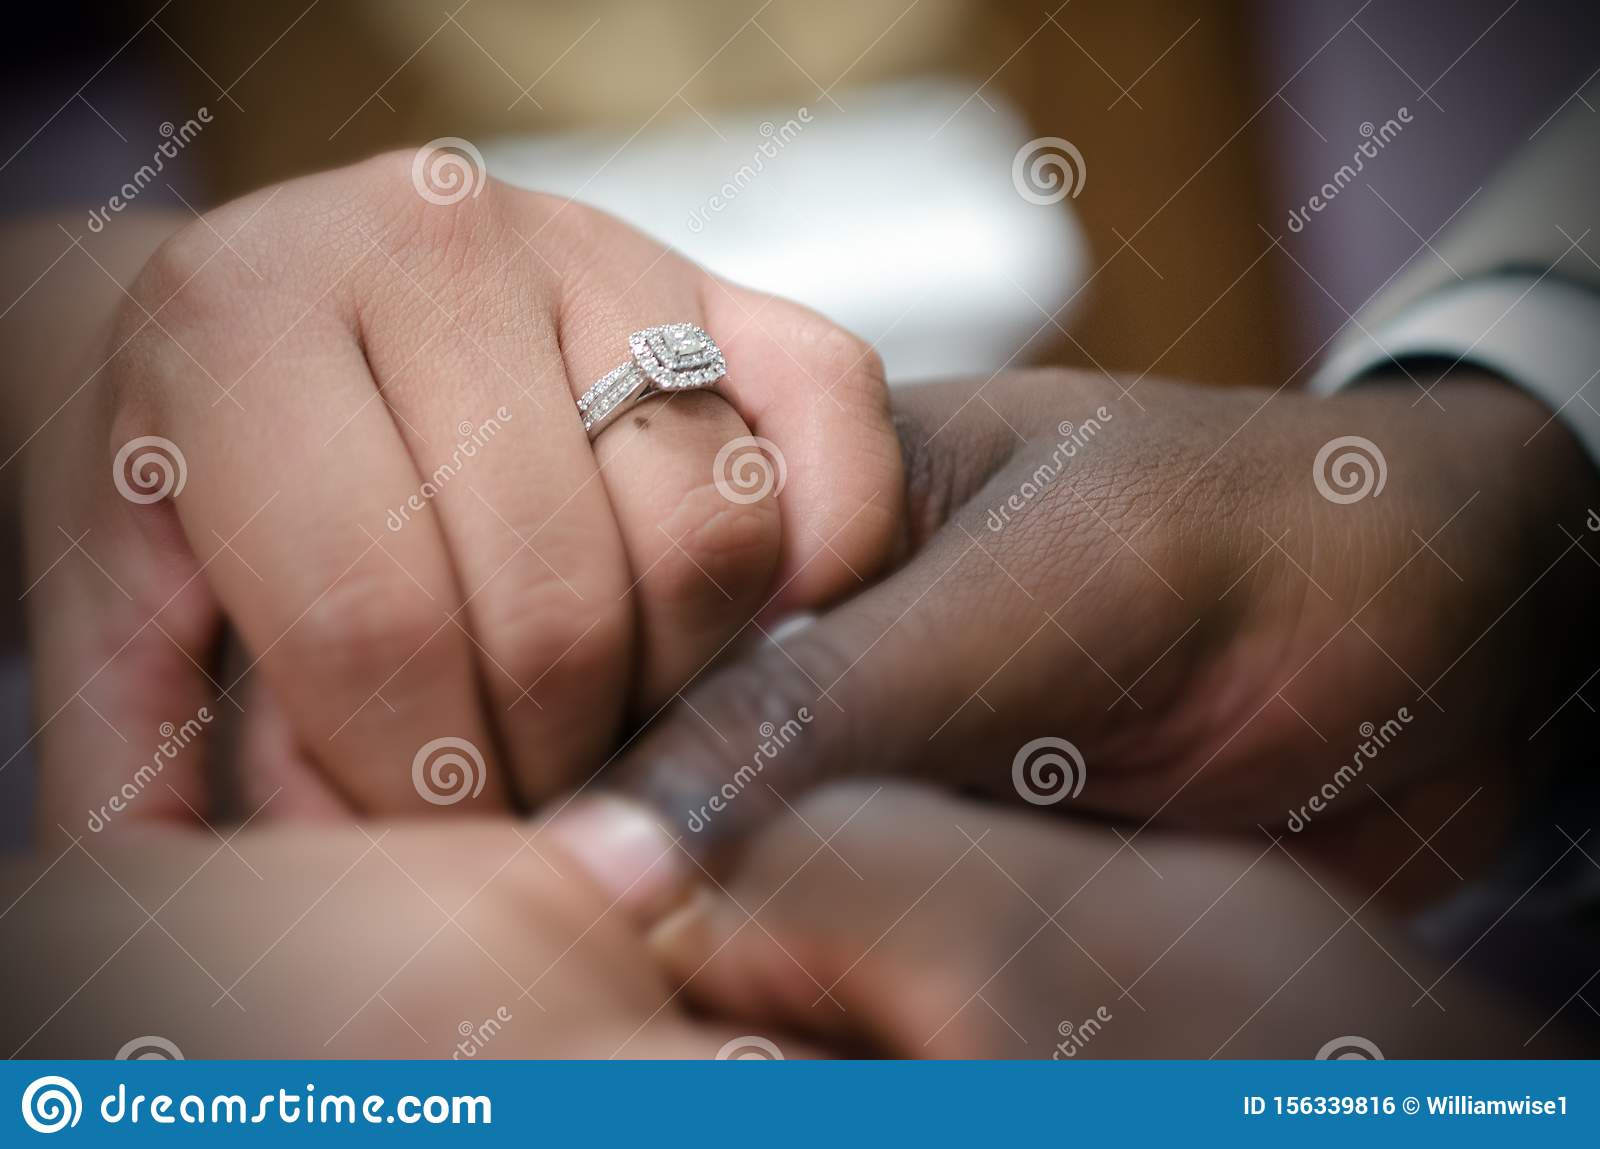 Interracial couple holding hands a the wedding altar